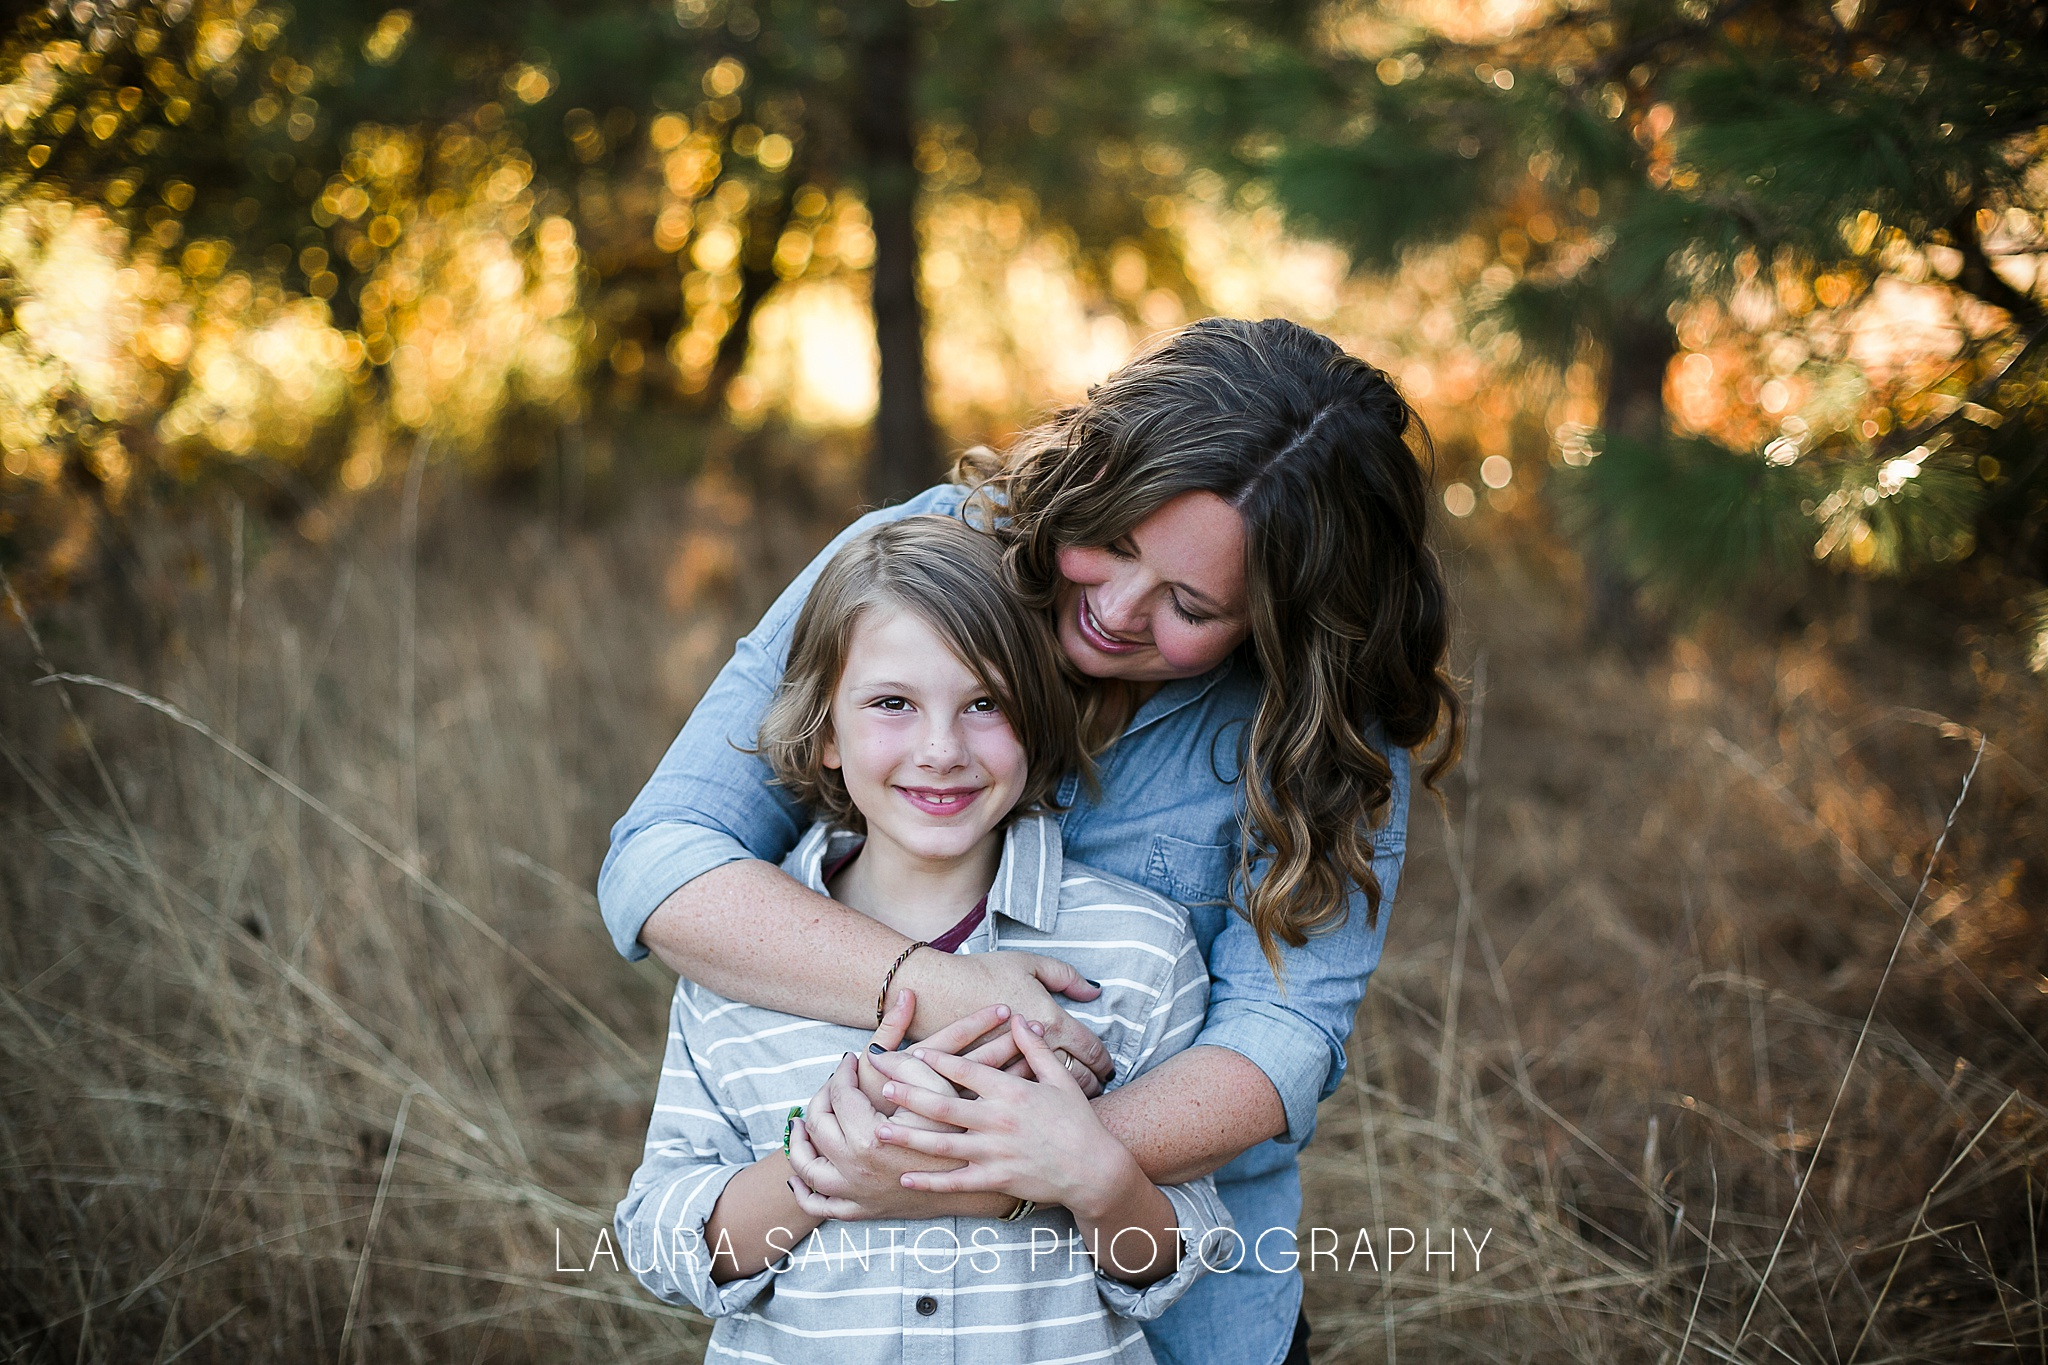 Laura Santos Photography Portland Oregon Family Photographer_0906.jpg